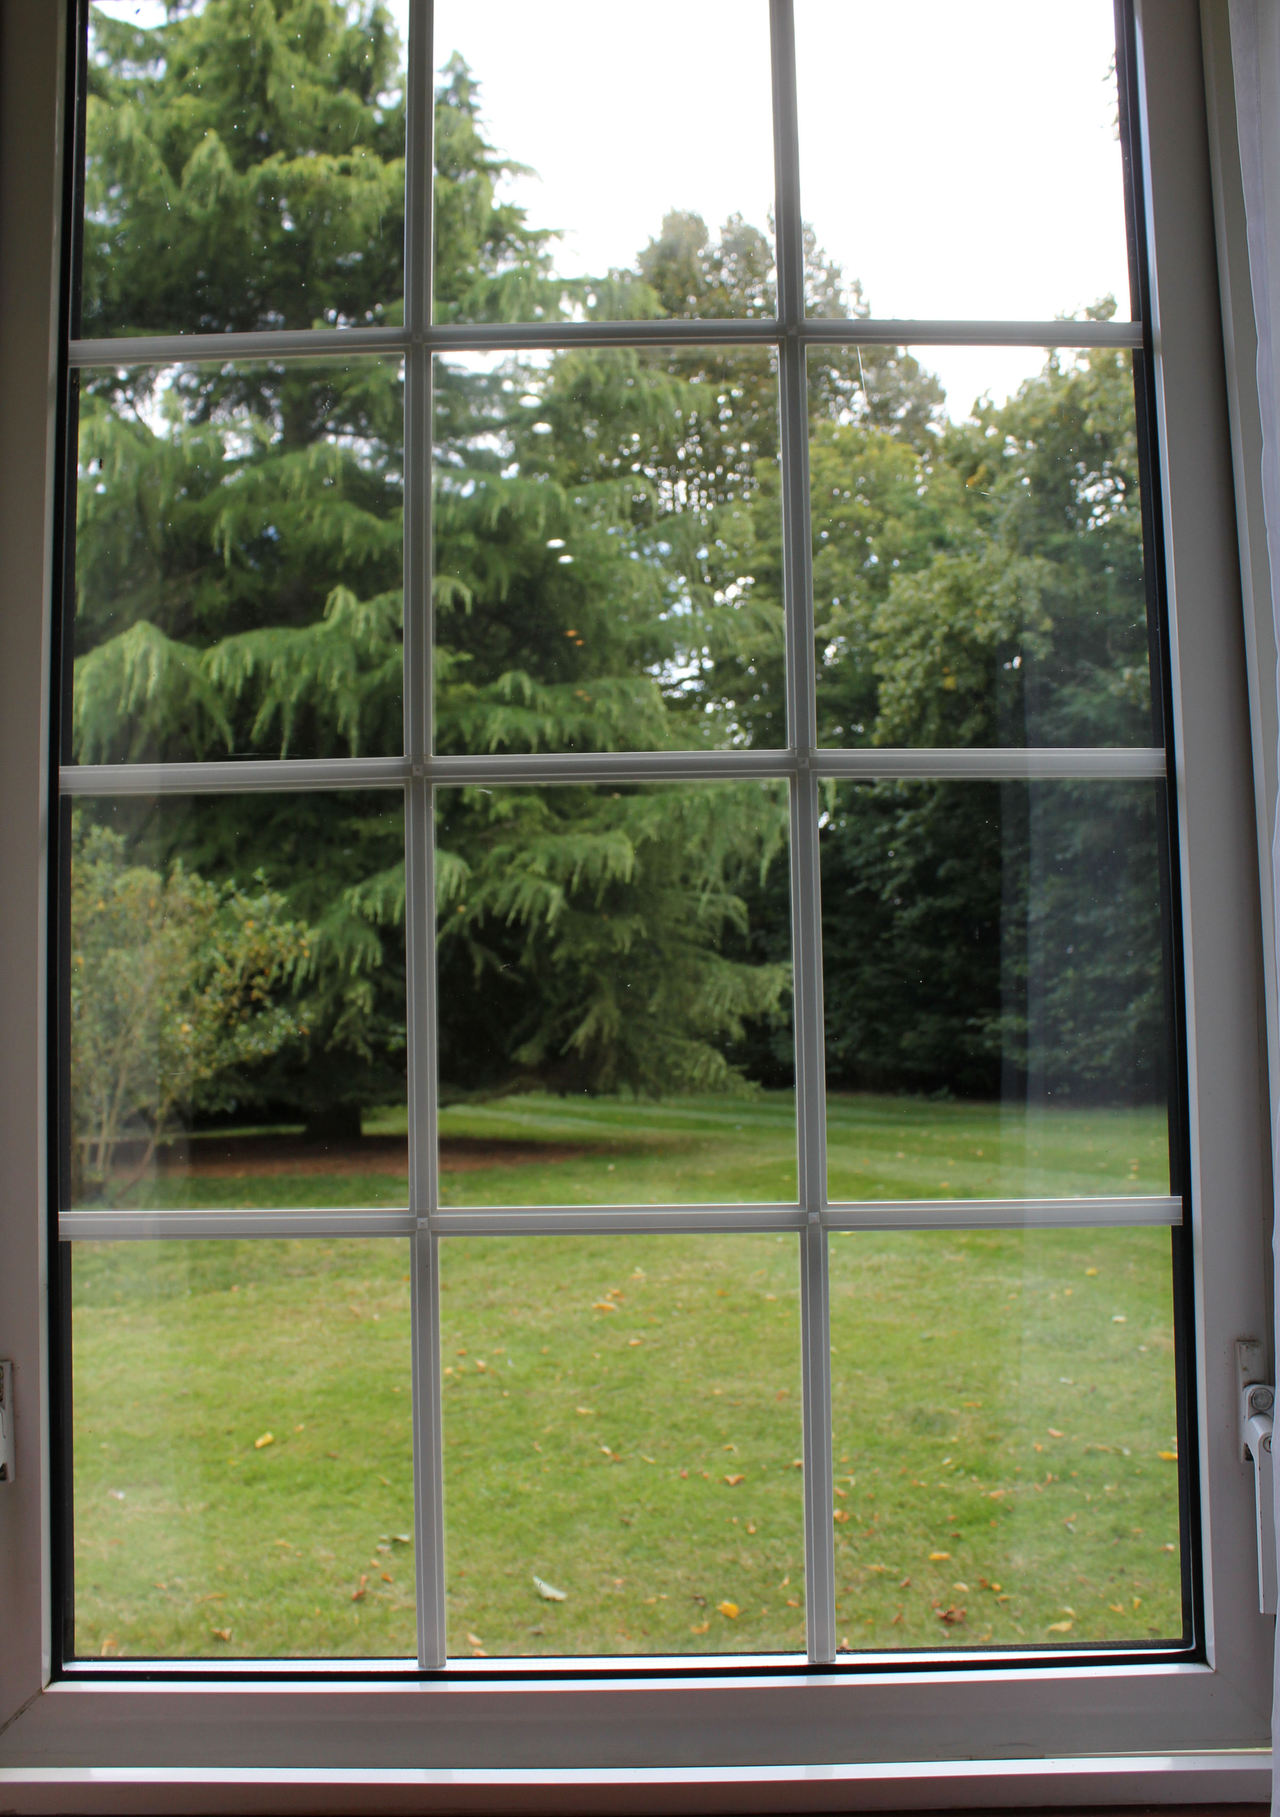 View from one of the windows at The Old Rectory Hotel Crostwick